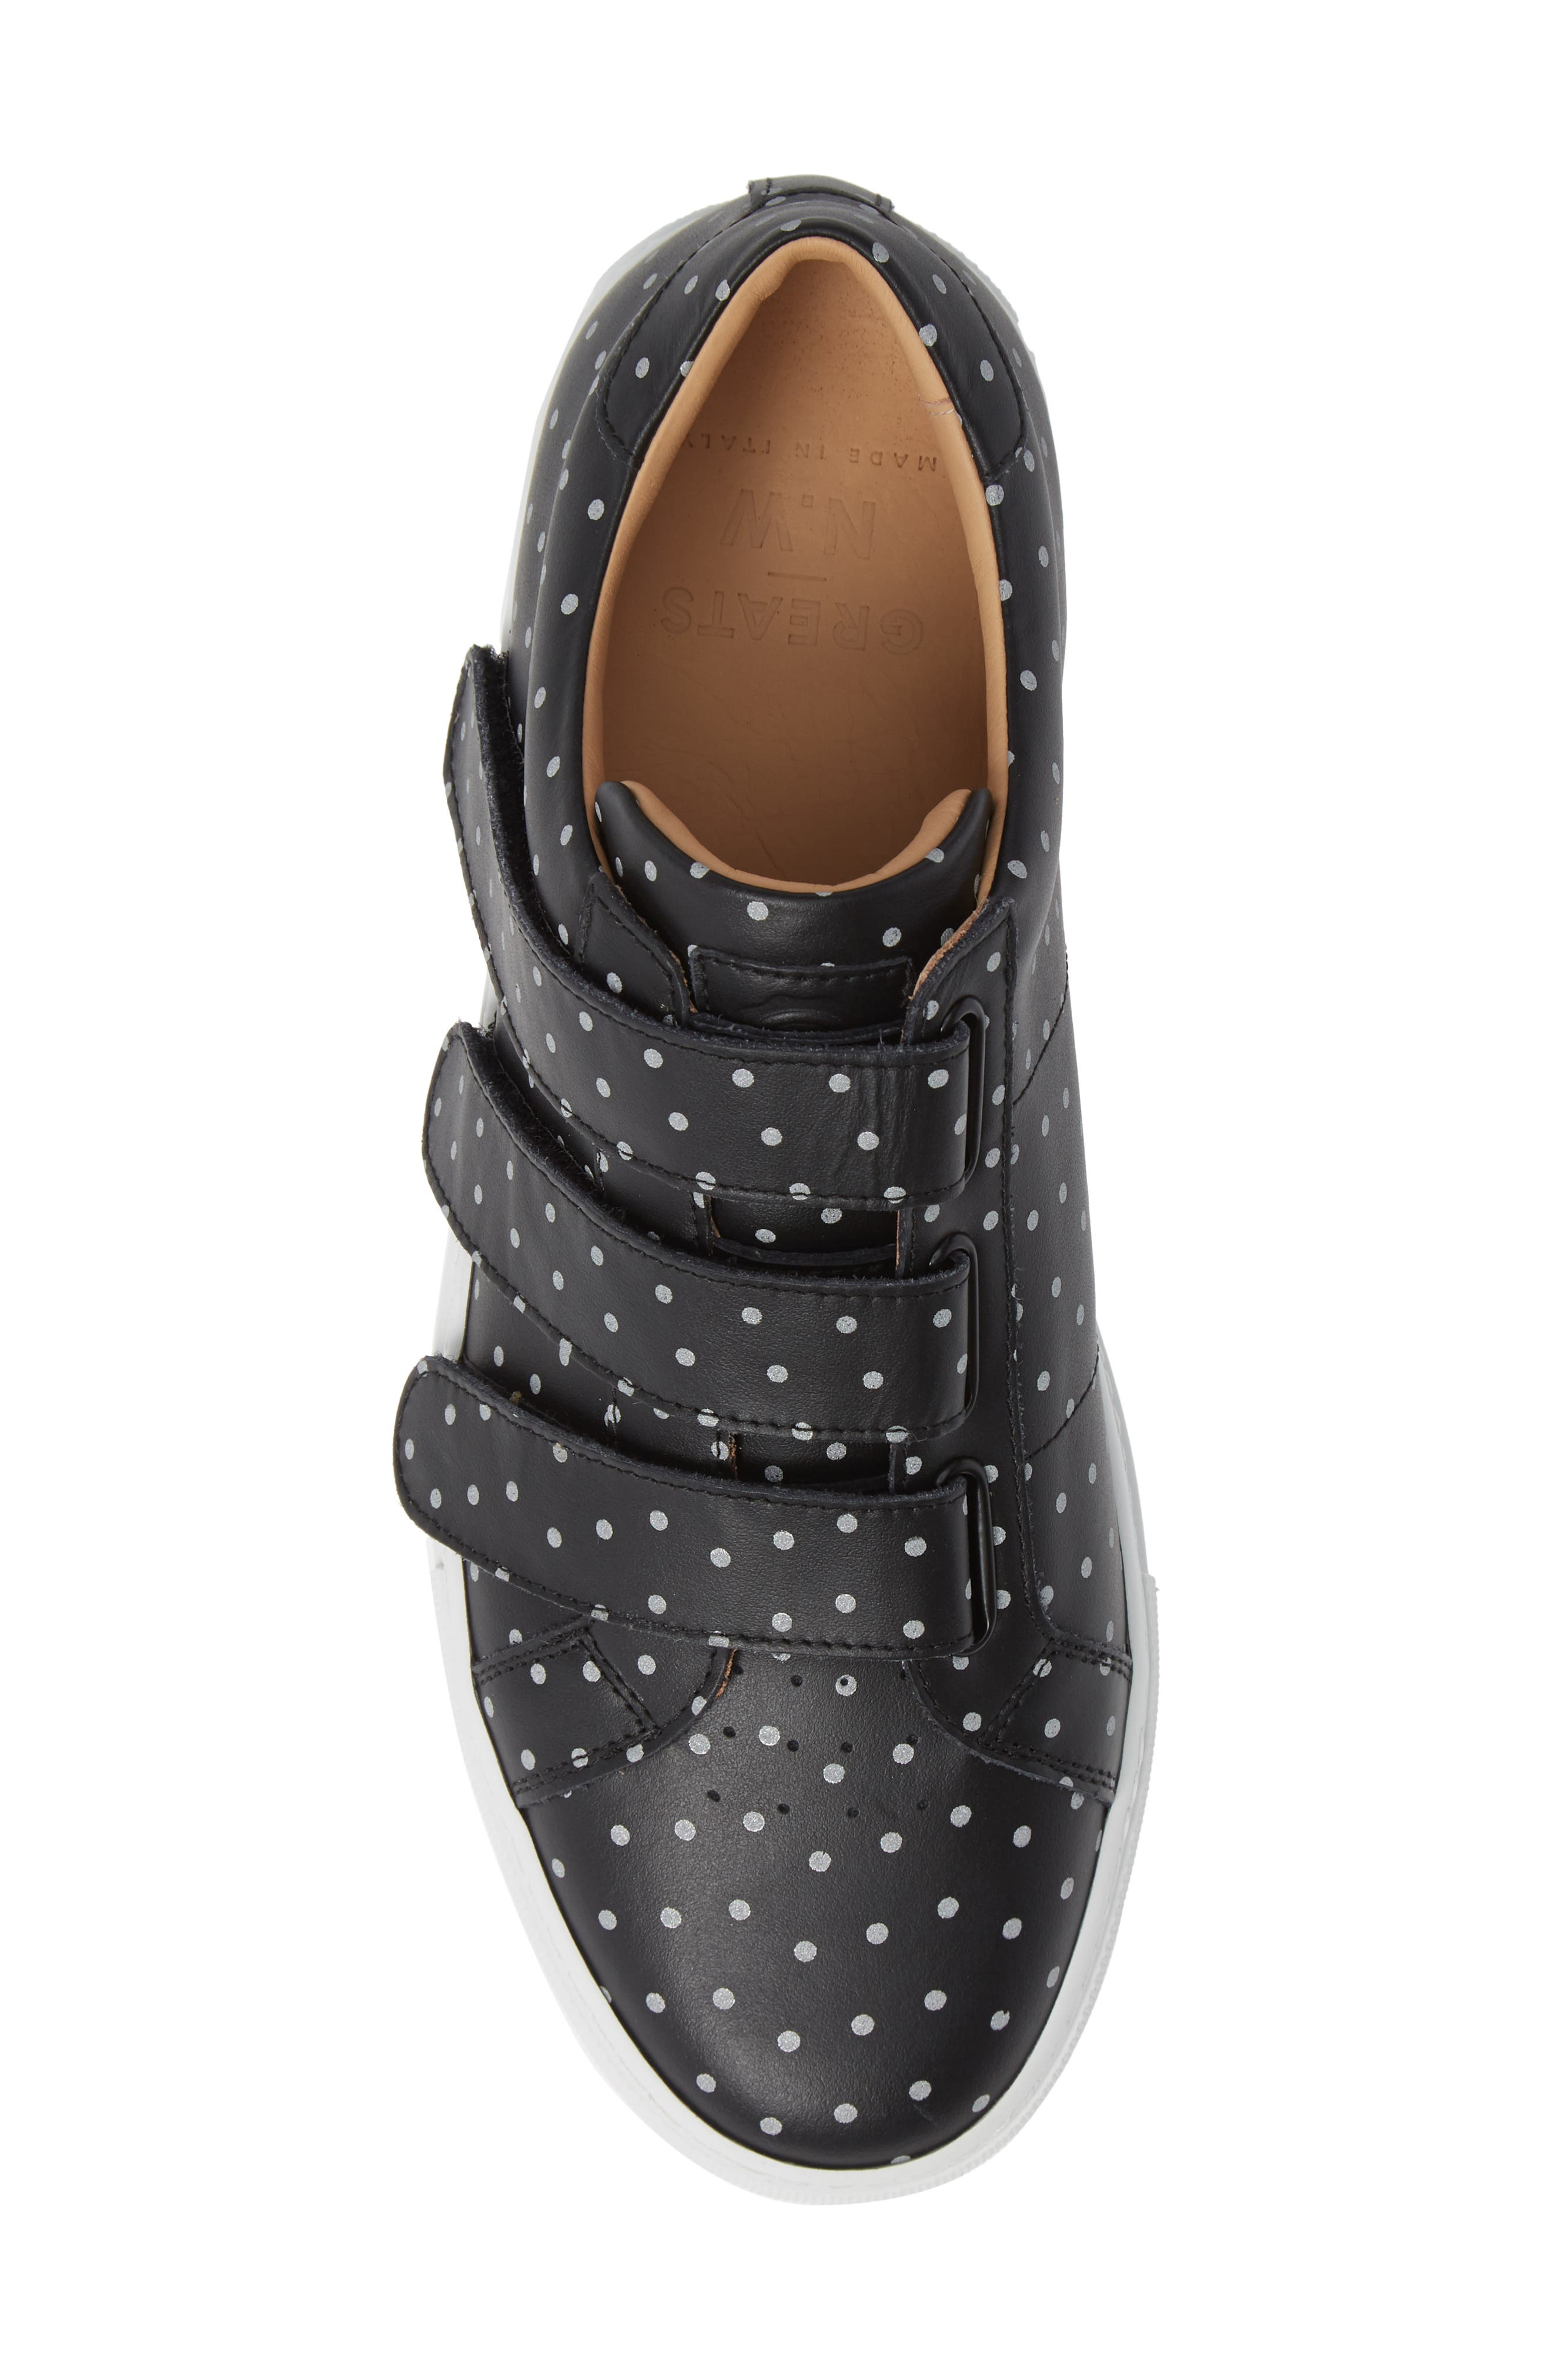 Nick Wooster x GREATS Royale Low Top Sneaker,                             Alternate thumbnail 5, color,                             BLACK LEATHER 3M